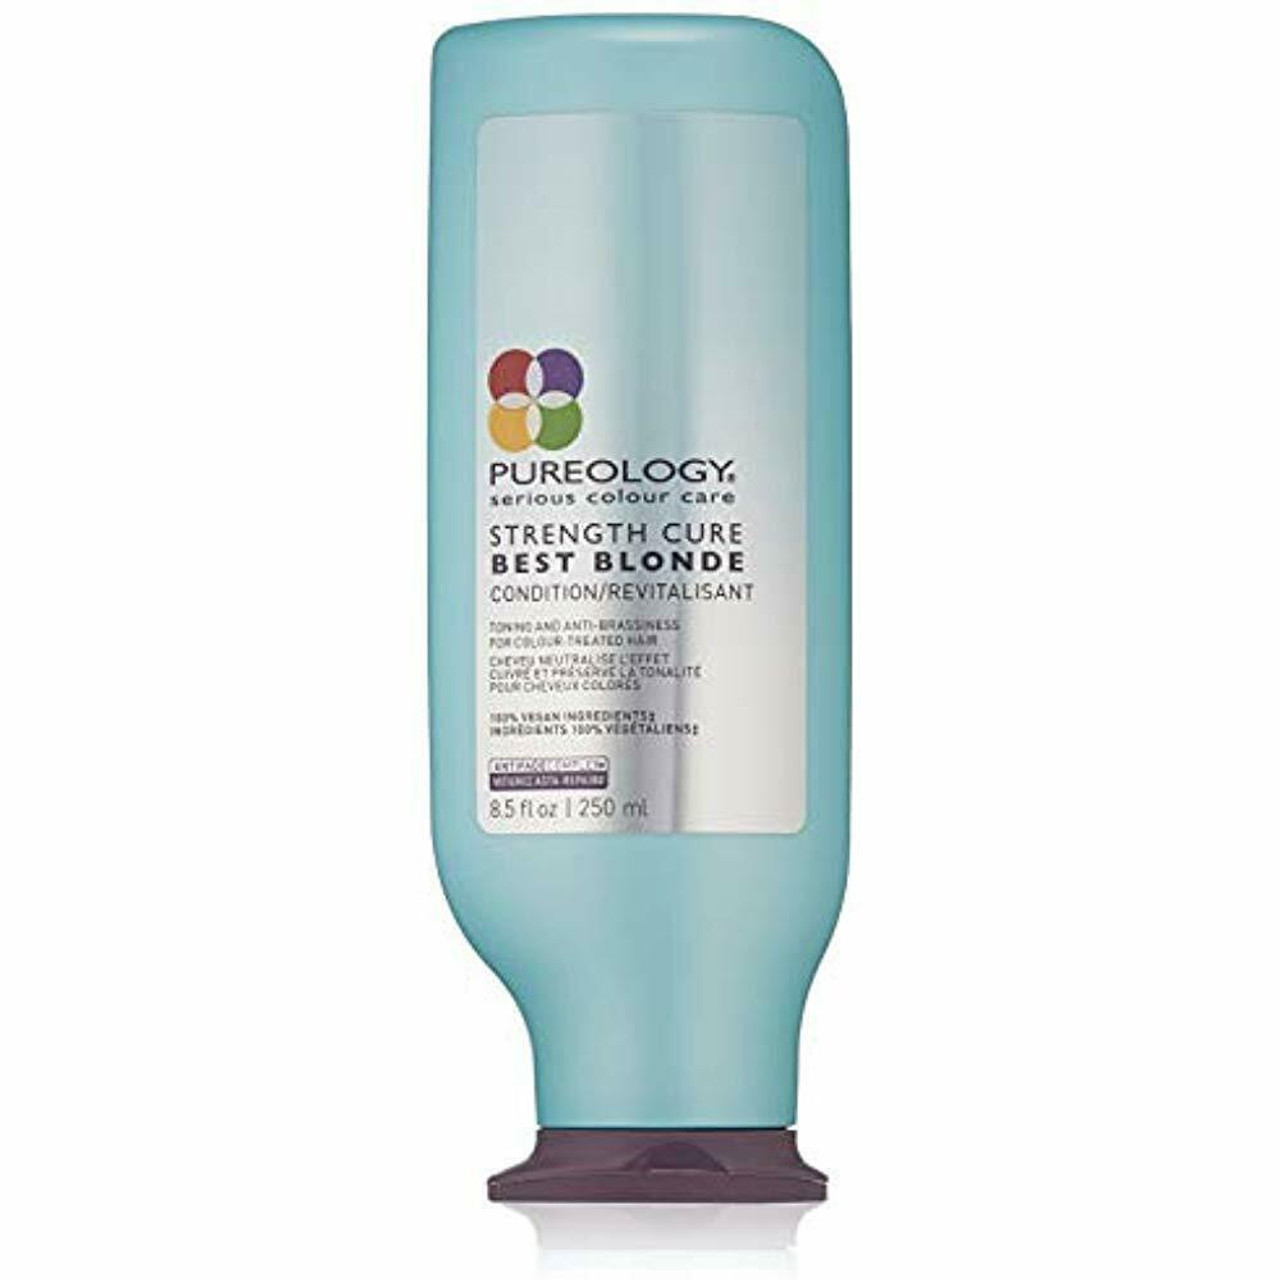 Pureology Strength Cure Best Blonde Conditioner 8.5 oz